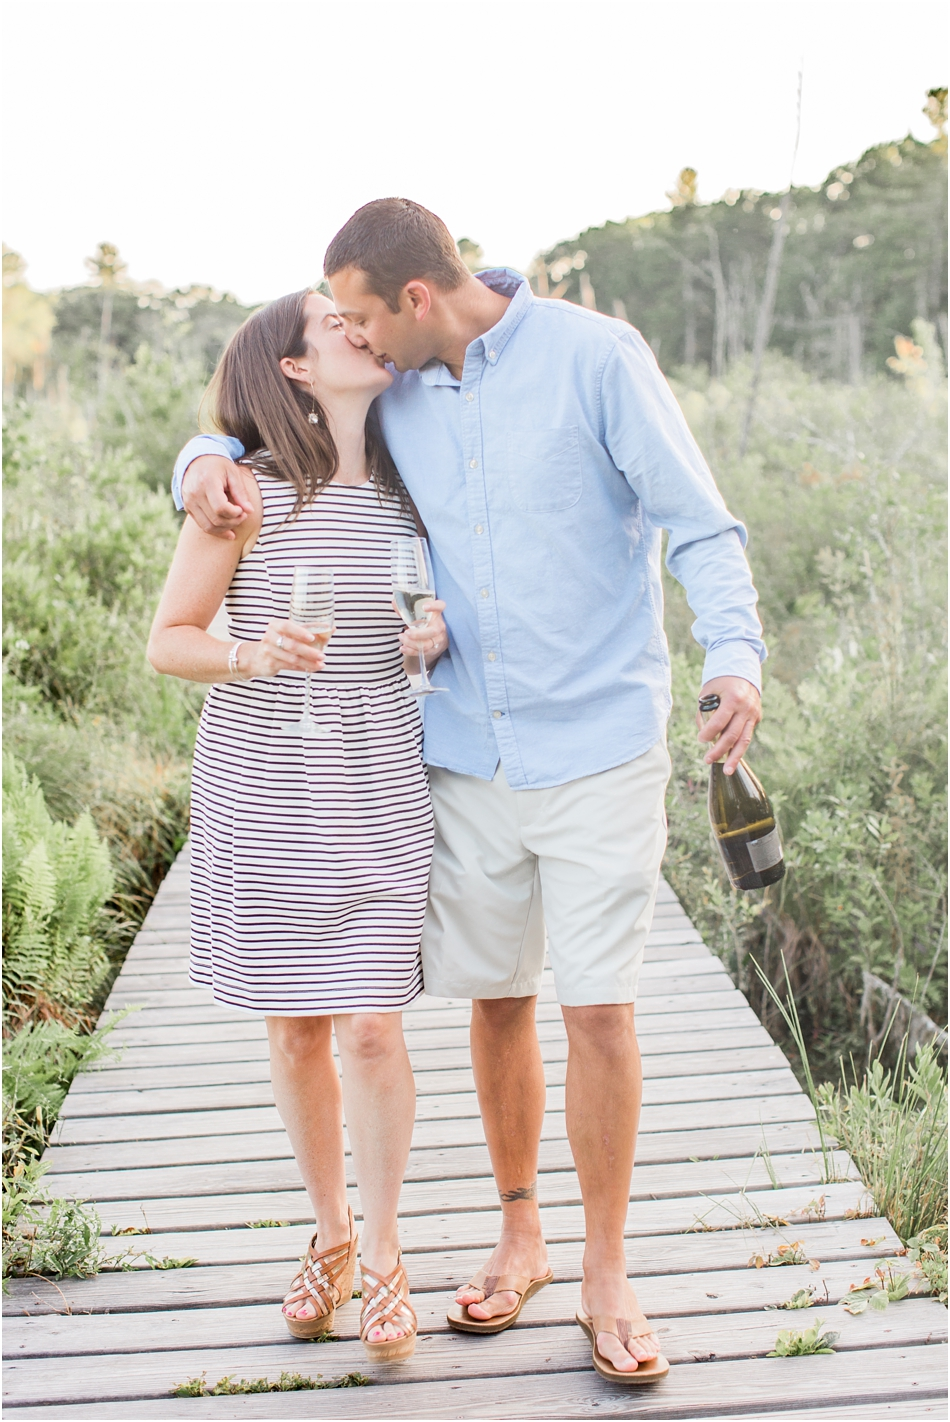 danvers_rail_trail_engagement_boston_massachusetts_cape_cod_new_england_wedding_photographer_Meredith_Jane_Photography_photo_1947.jpg